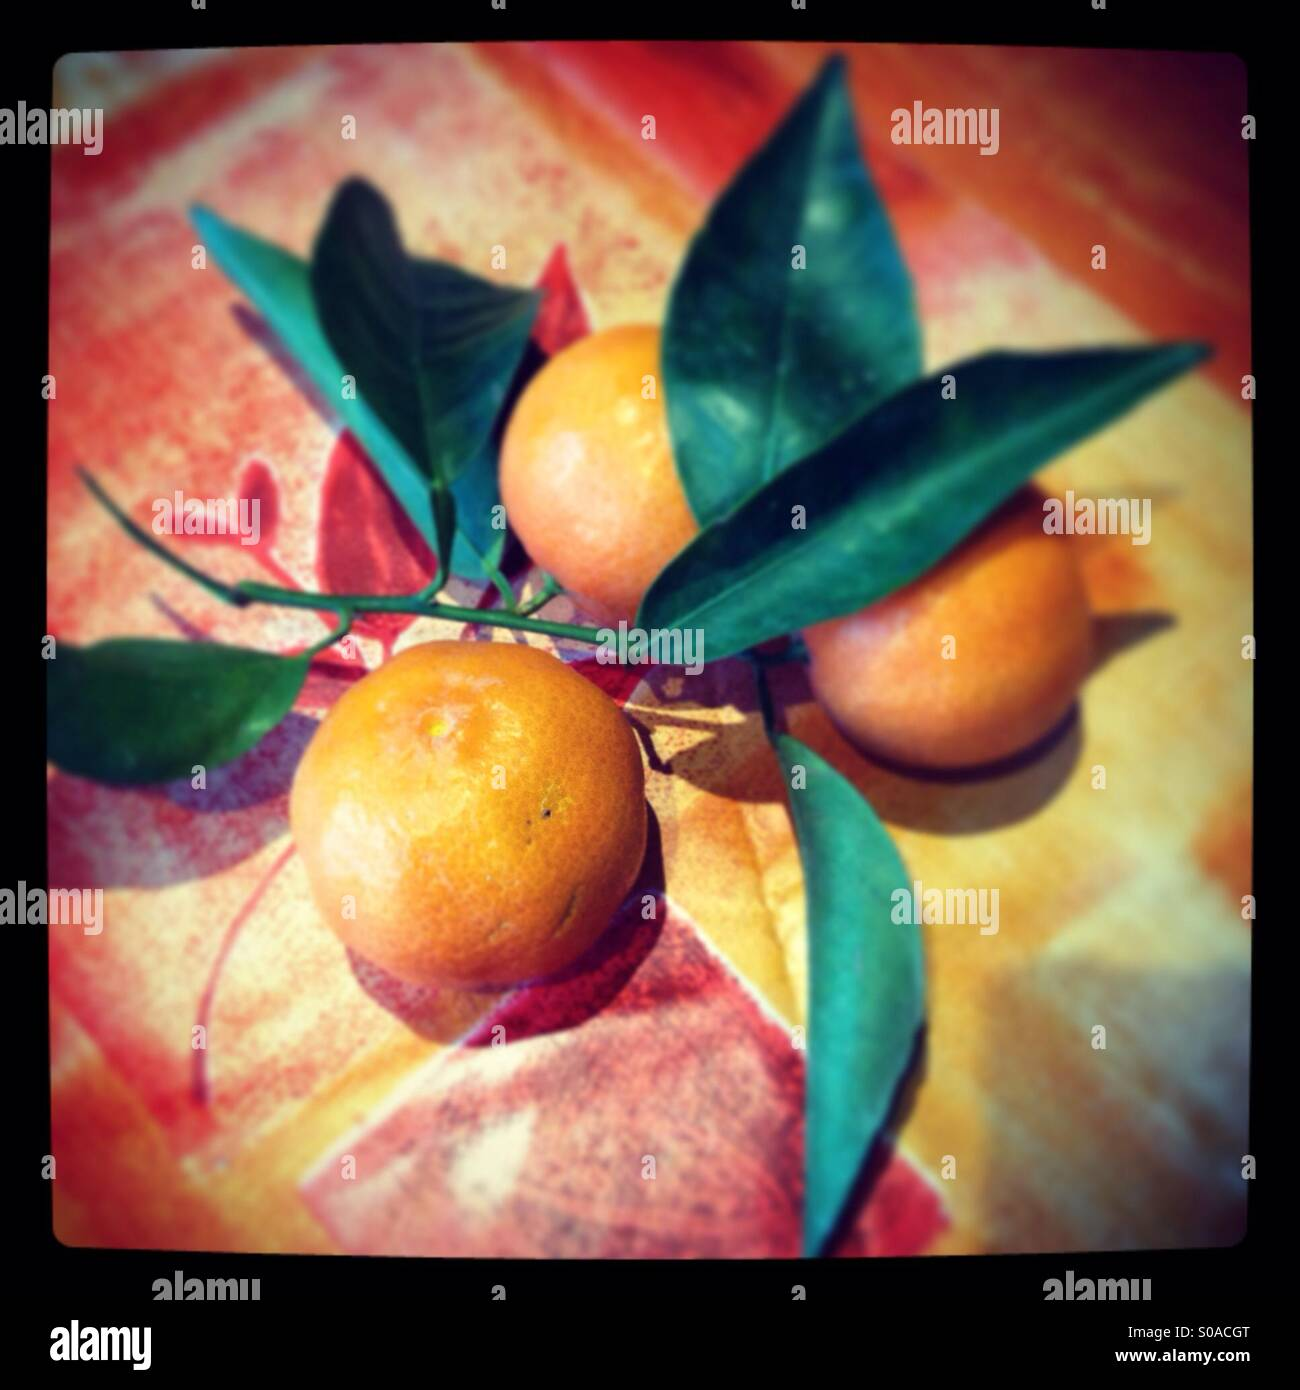 Oranges and leaves - Stock Image